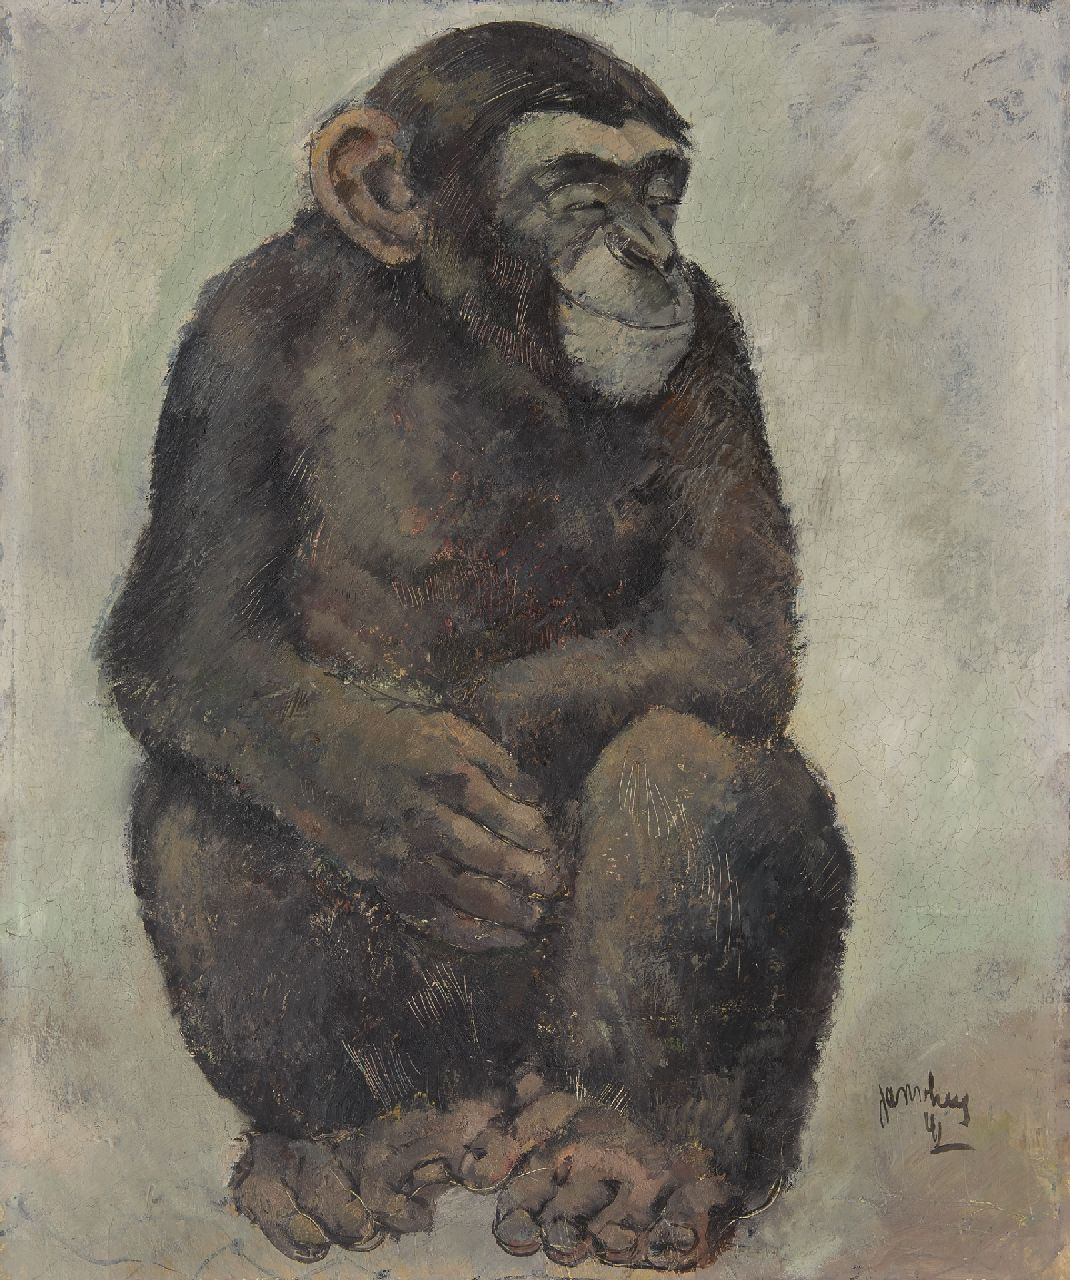 Jan van Heel | Sitting ape, oil on board, 60.0 x 50.0 cm, signed l.r. and dated '41